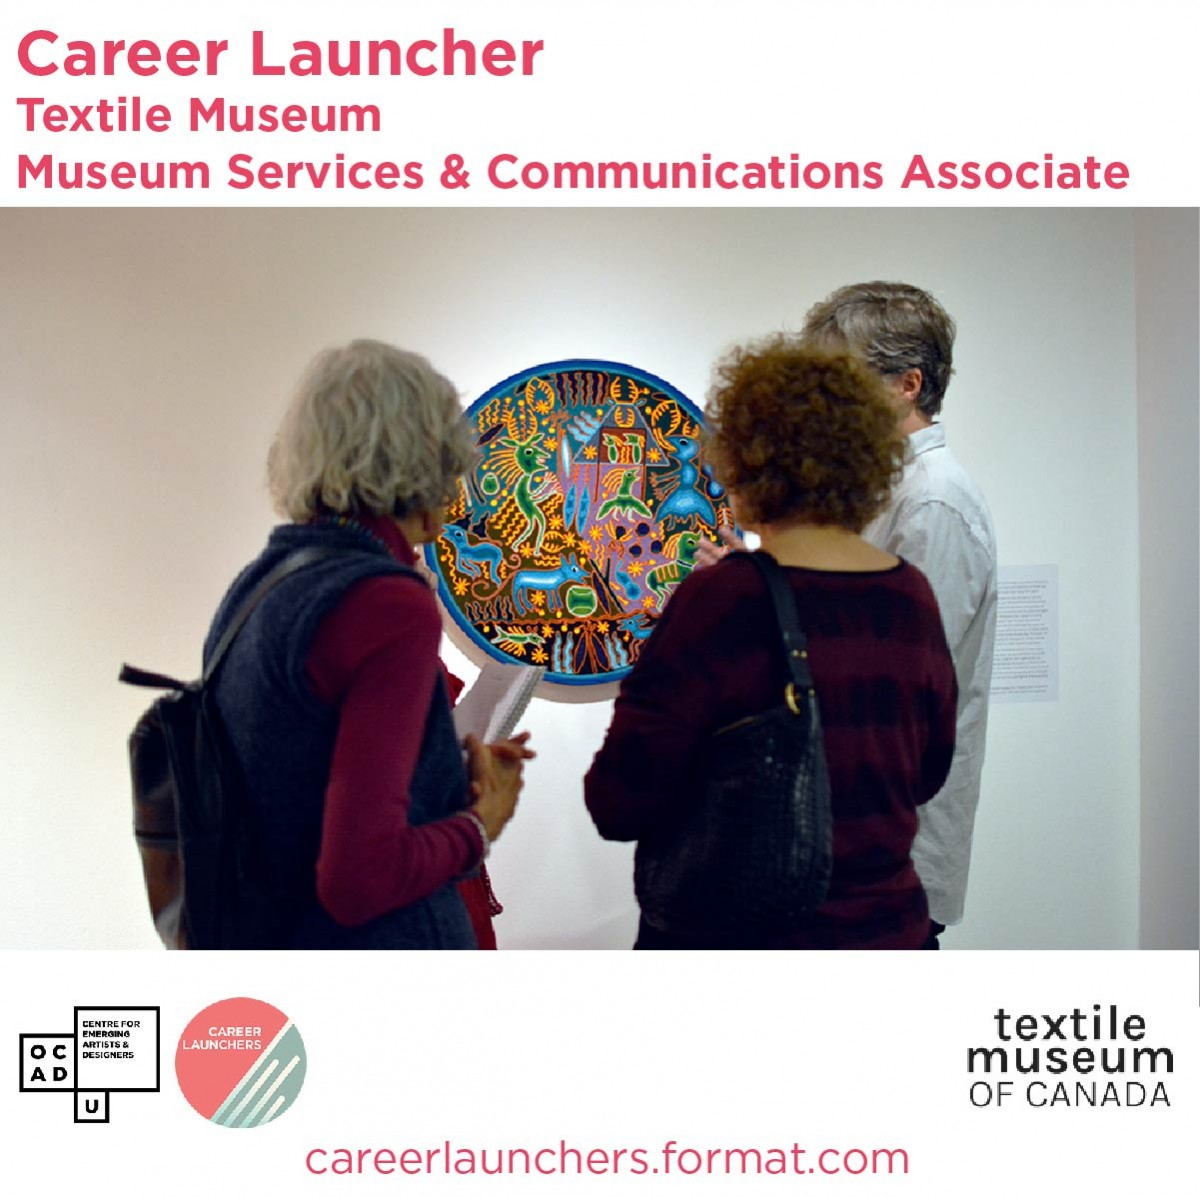 Call for Applications - Textile Museum - Museum Associate & Communications Associate